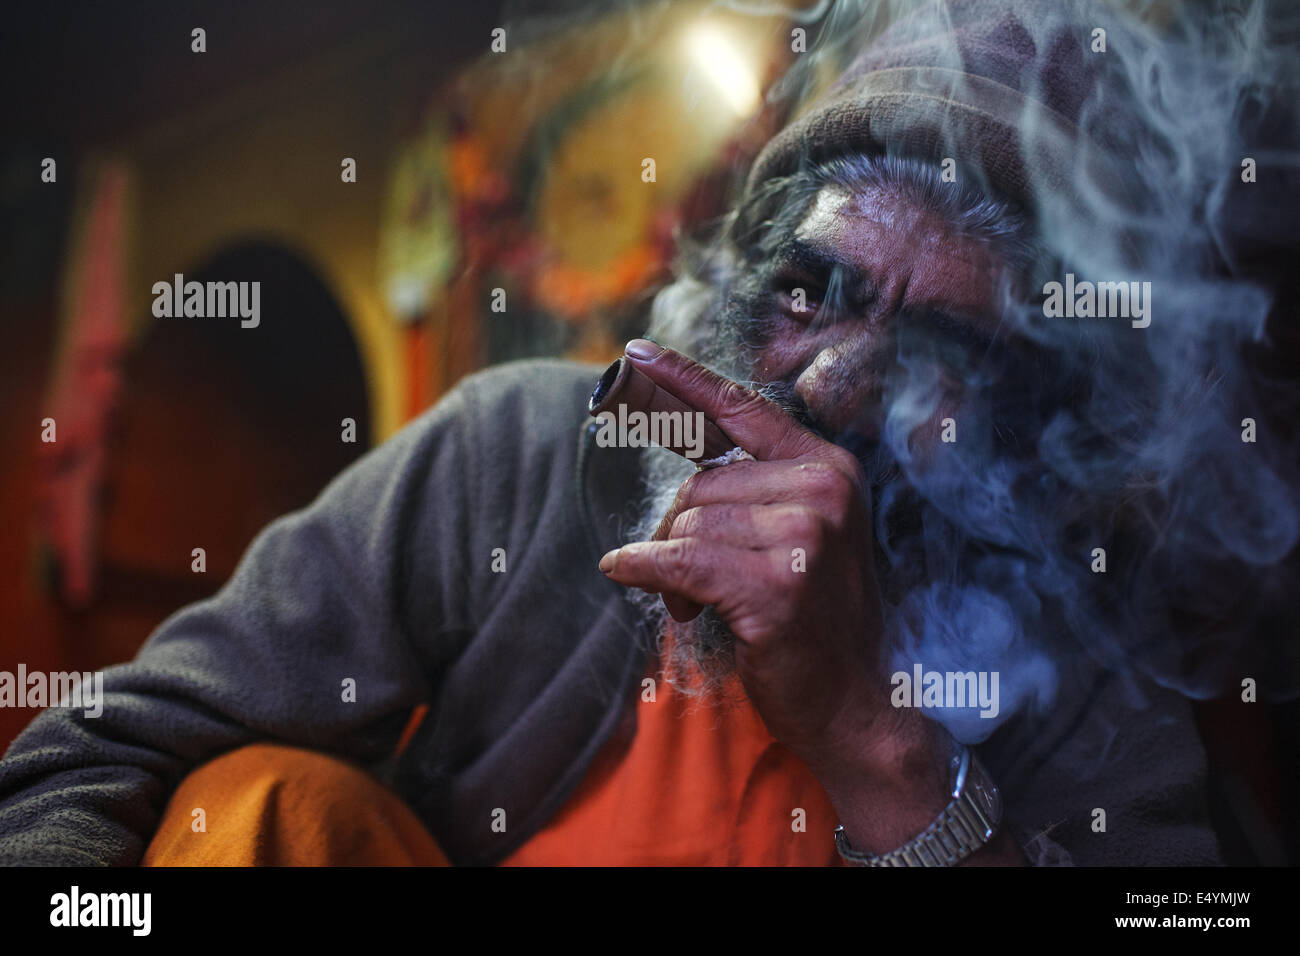 Chillum High Resolution Stock Photography And Images Alamy